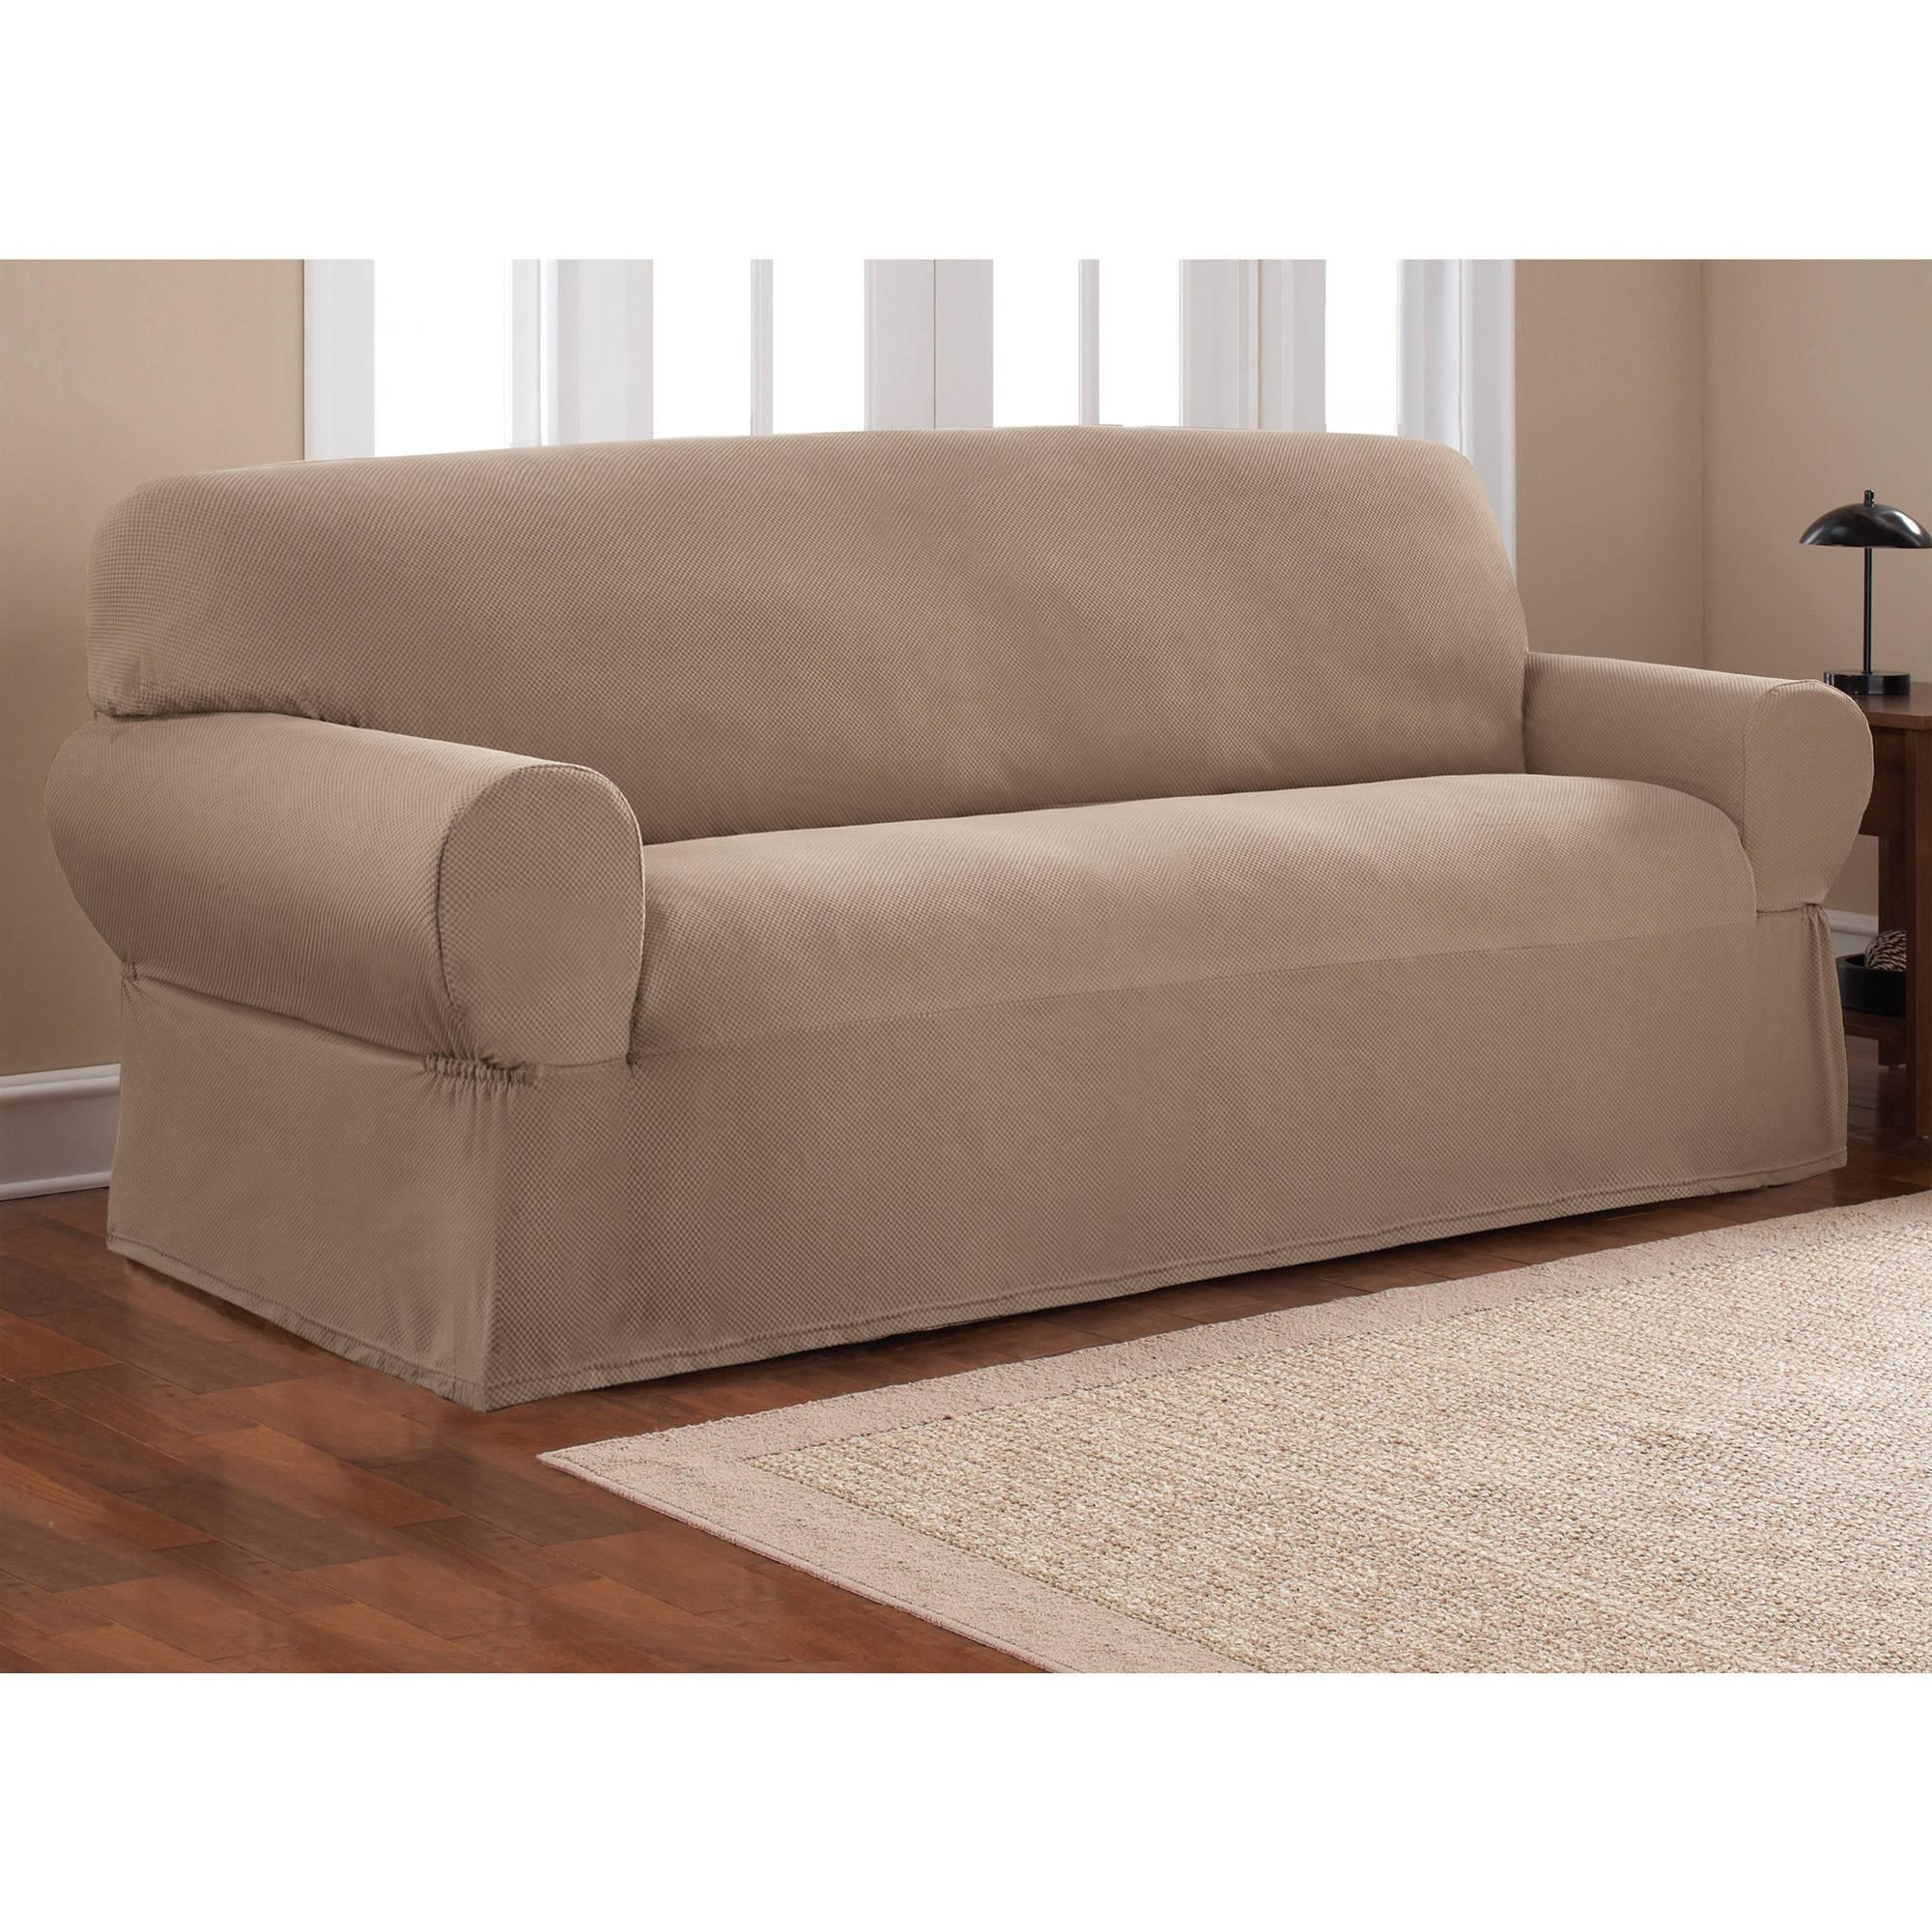 Mainstays 1 Piece Stretch Fabric Sofa Slipcover – Walmart Intended For Canvas Sofa Slipcovers (View 13 of 20)